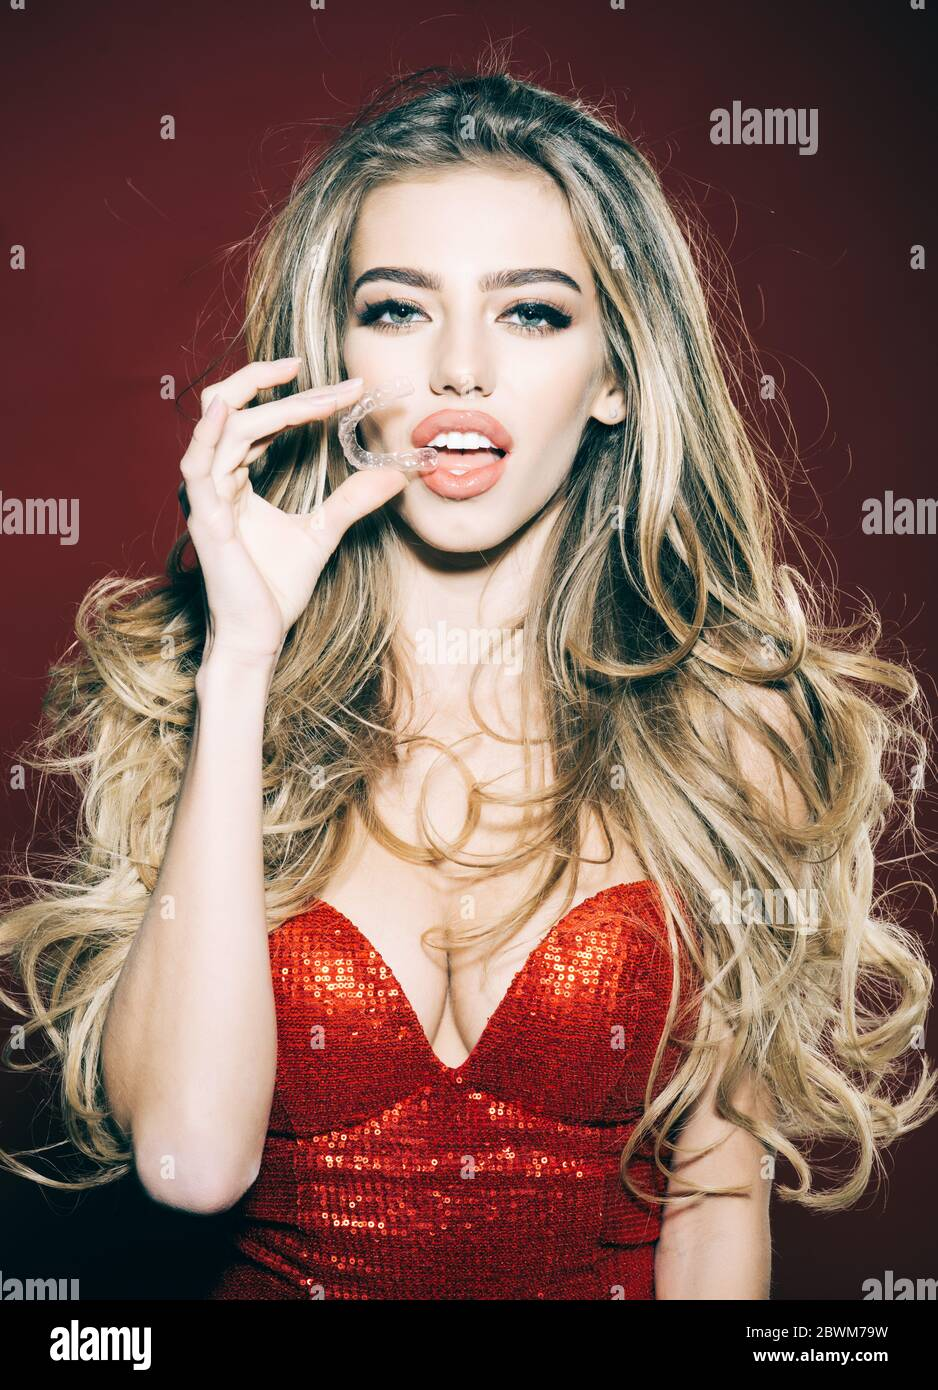 Gorgeous Woman putting transparent retainer in teeth. Plastic transparent retainer. Stomatology. Orthodontic devices. Girl in red dress holds mobile o Stock Photo